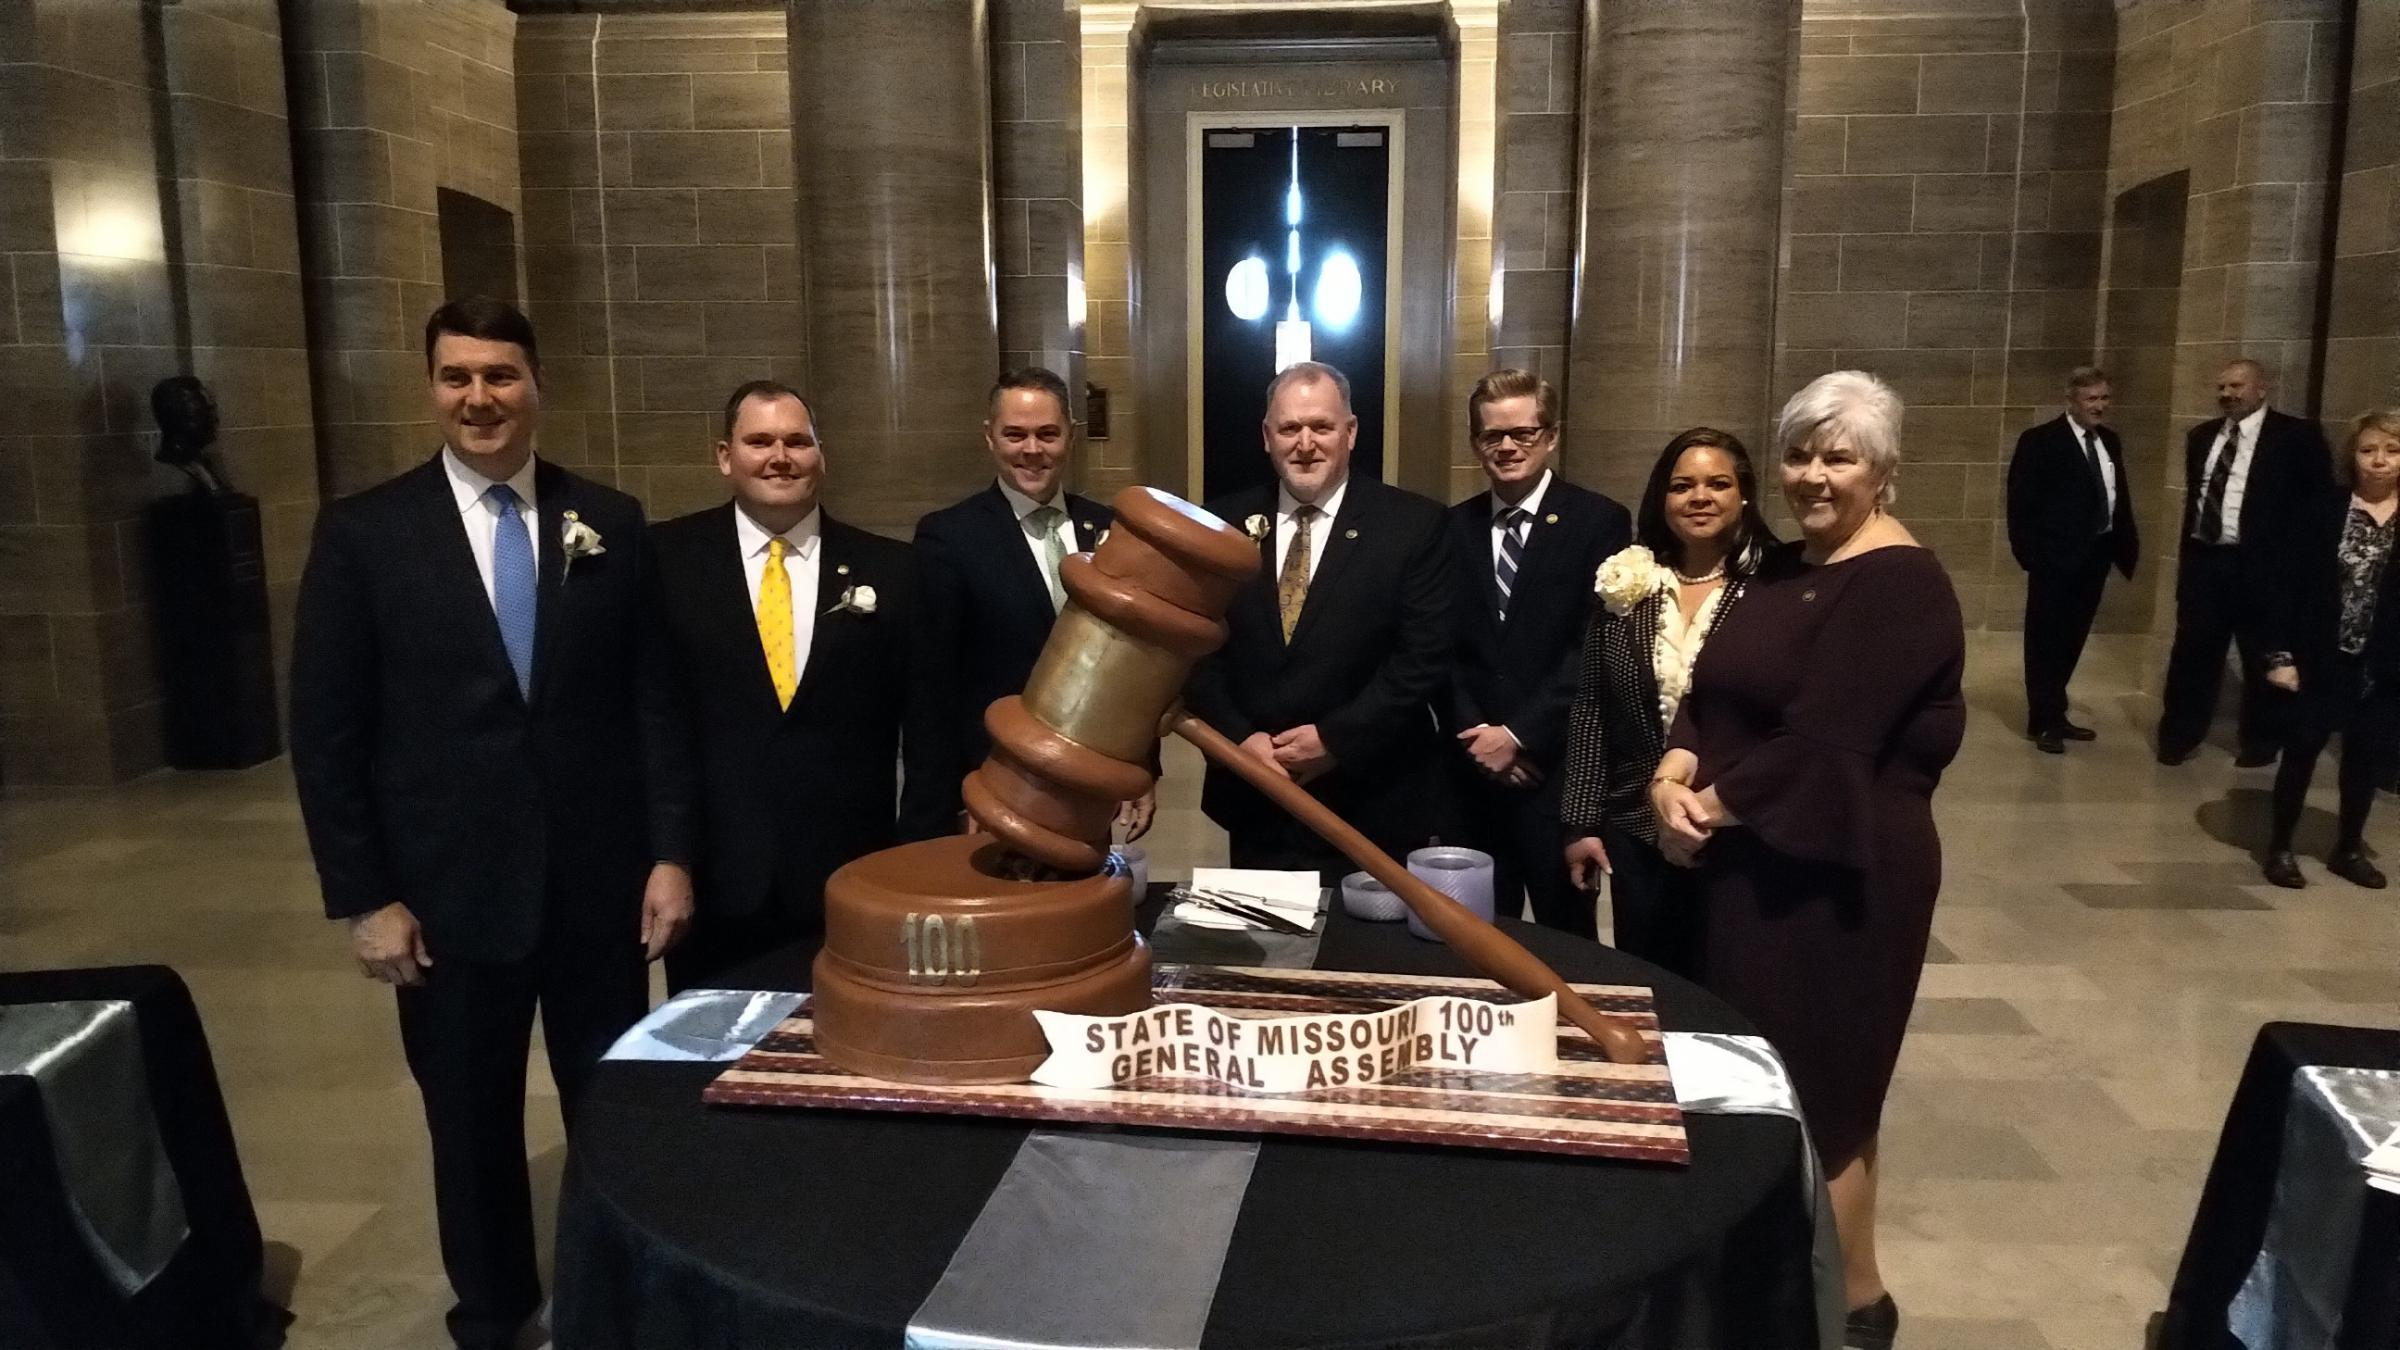 The Number 100 Defines 2019 For The Missouri General Assembly